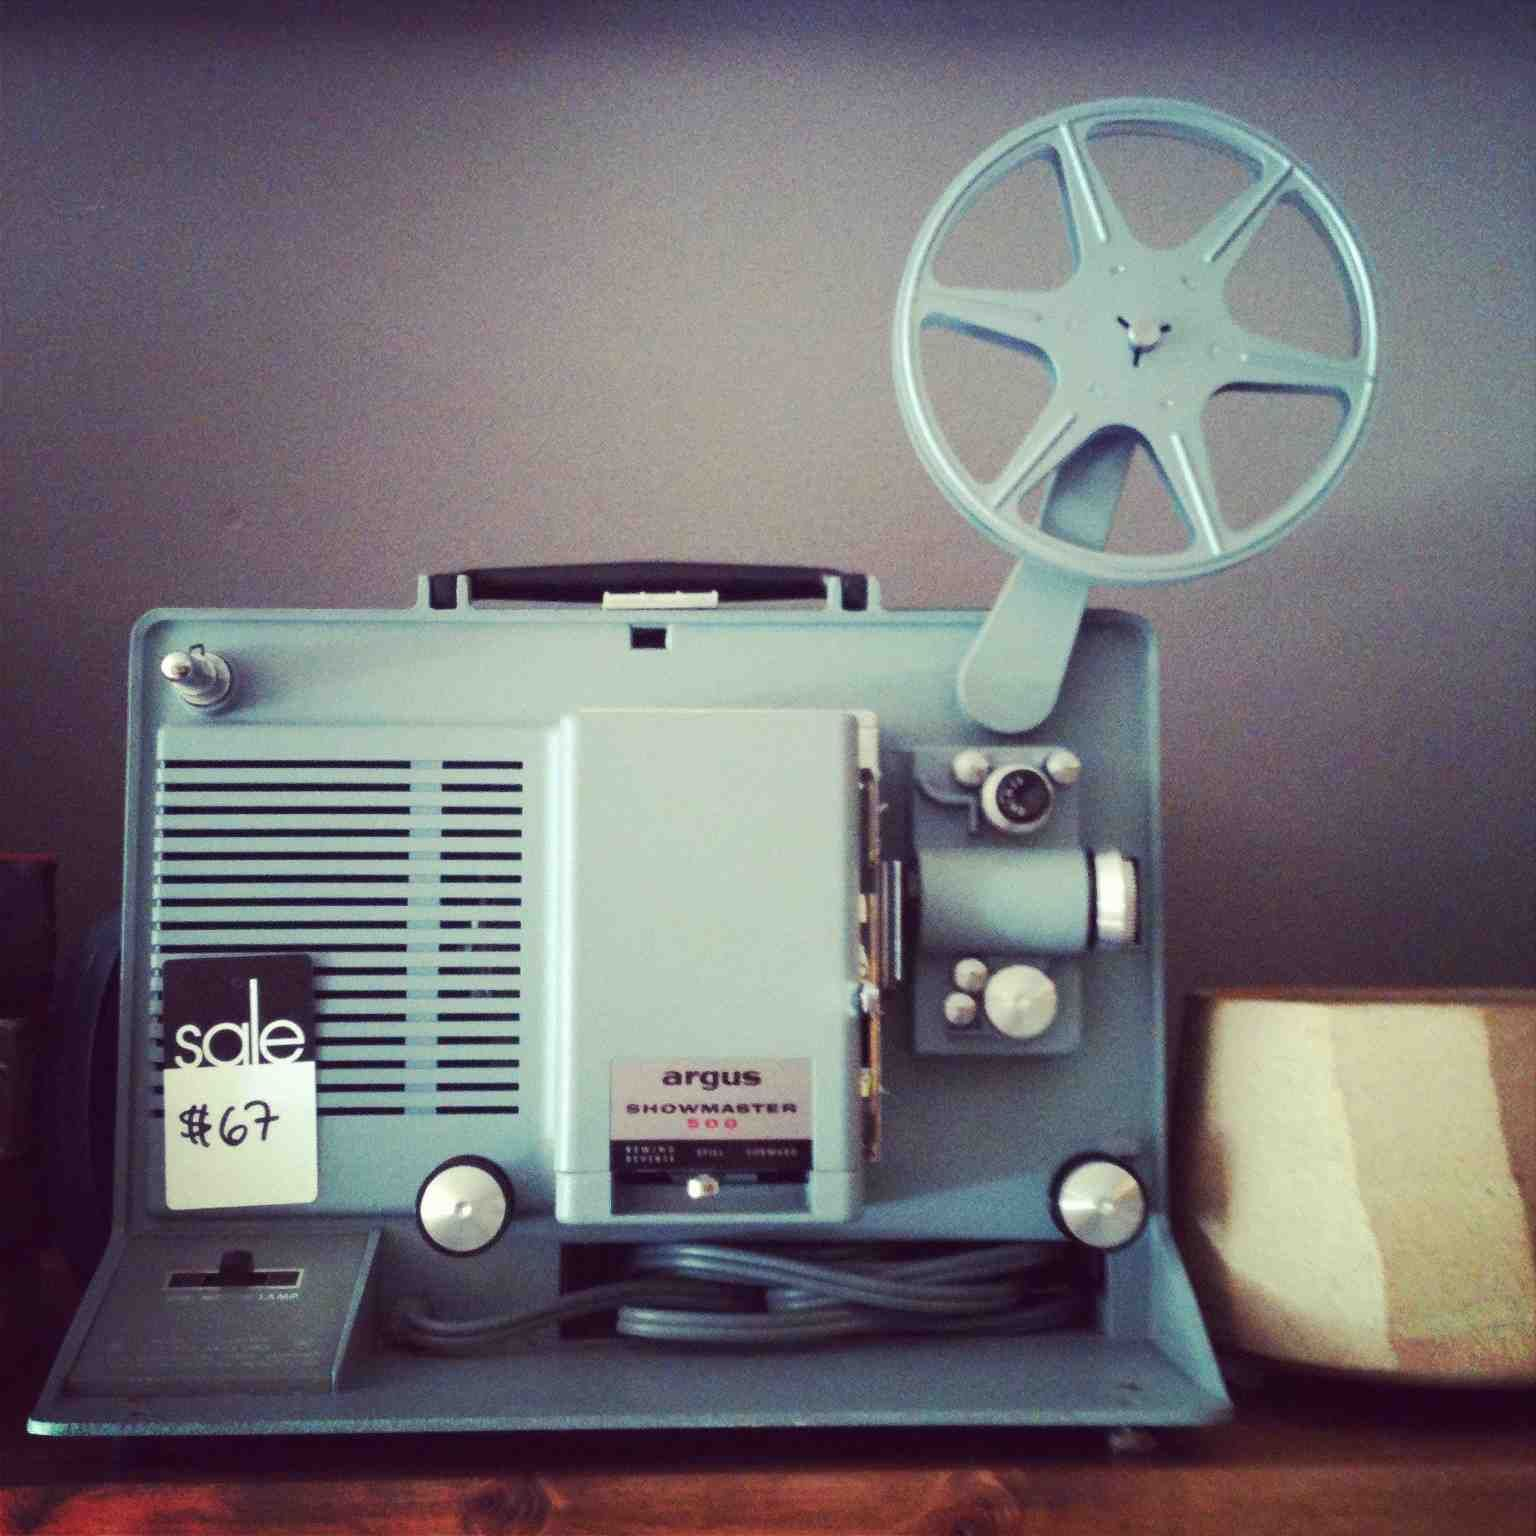 Film Projector    Very Nostalgic for me! And I still love